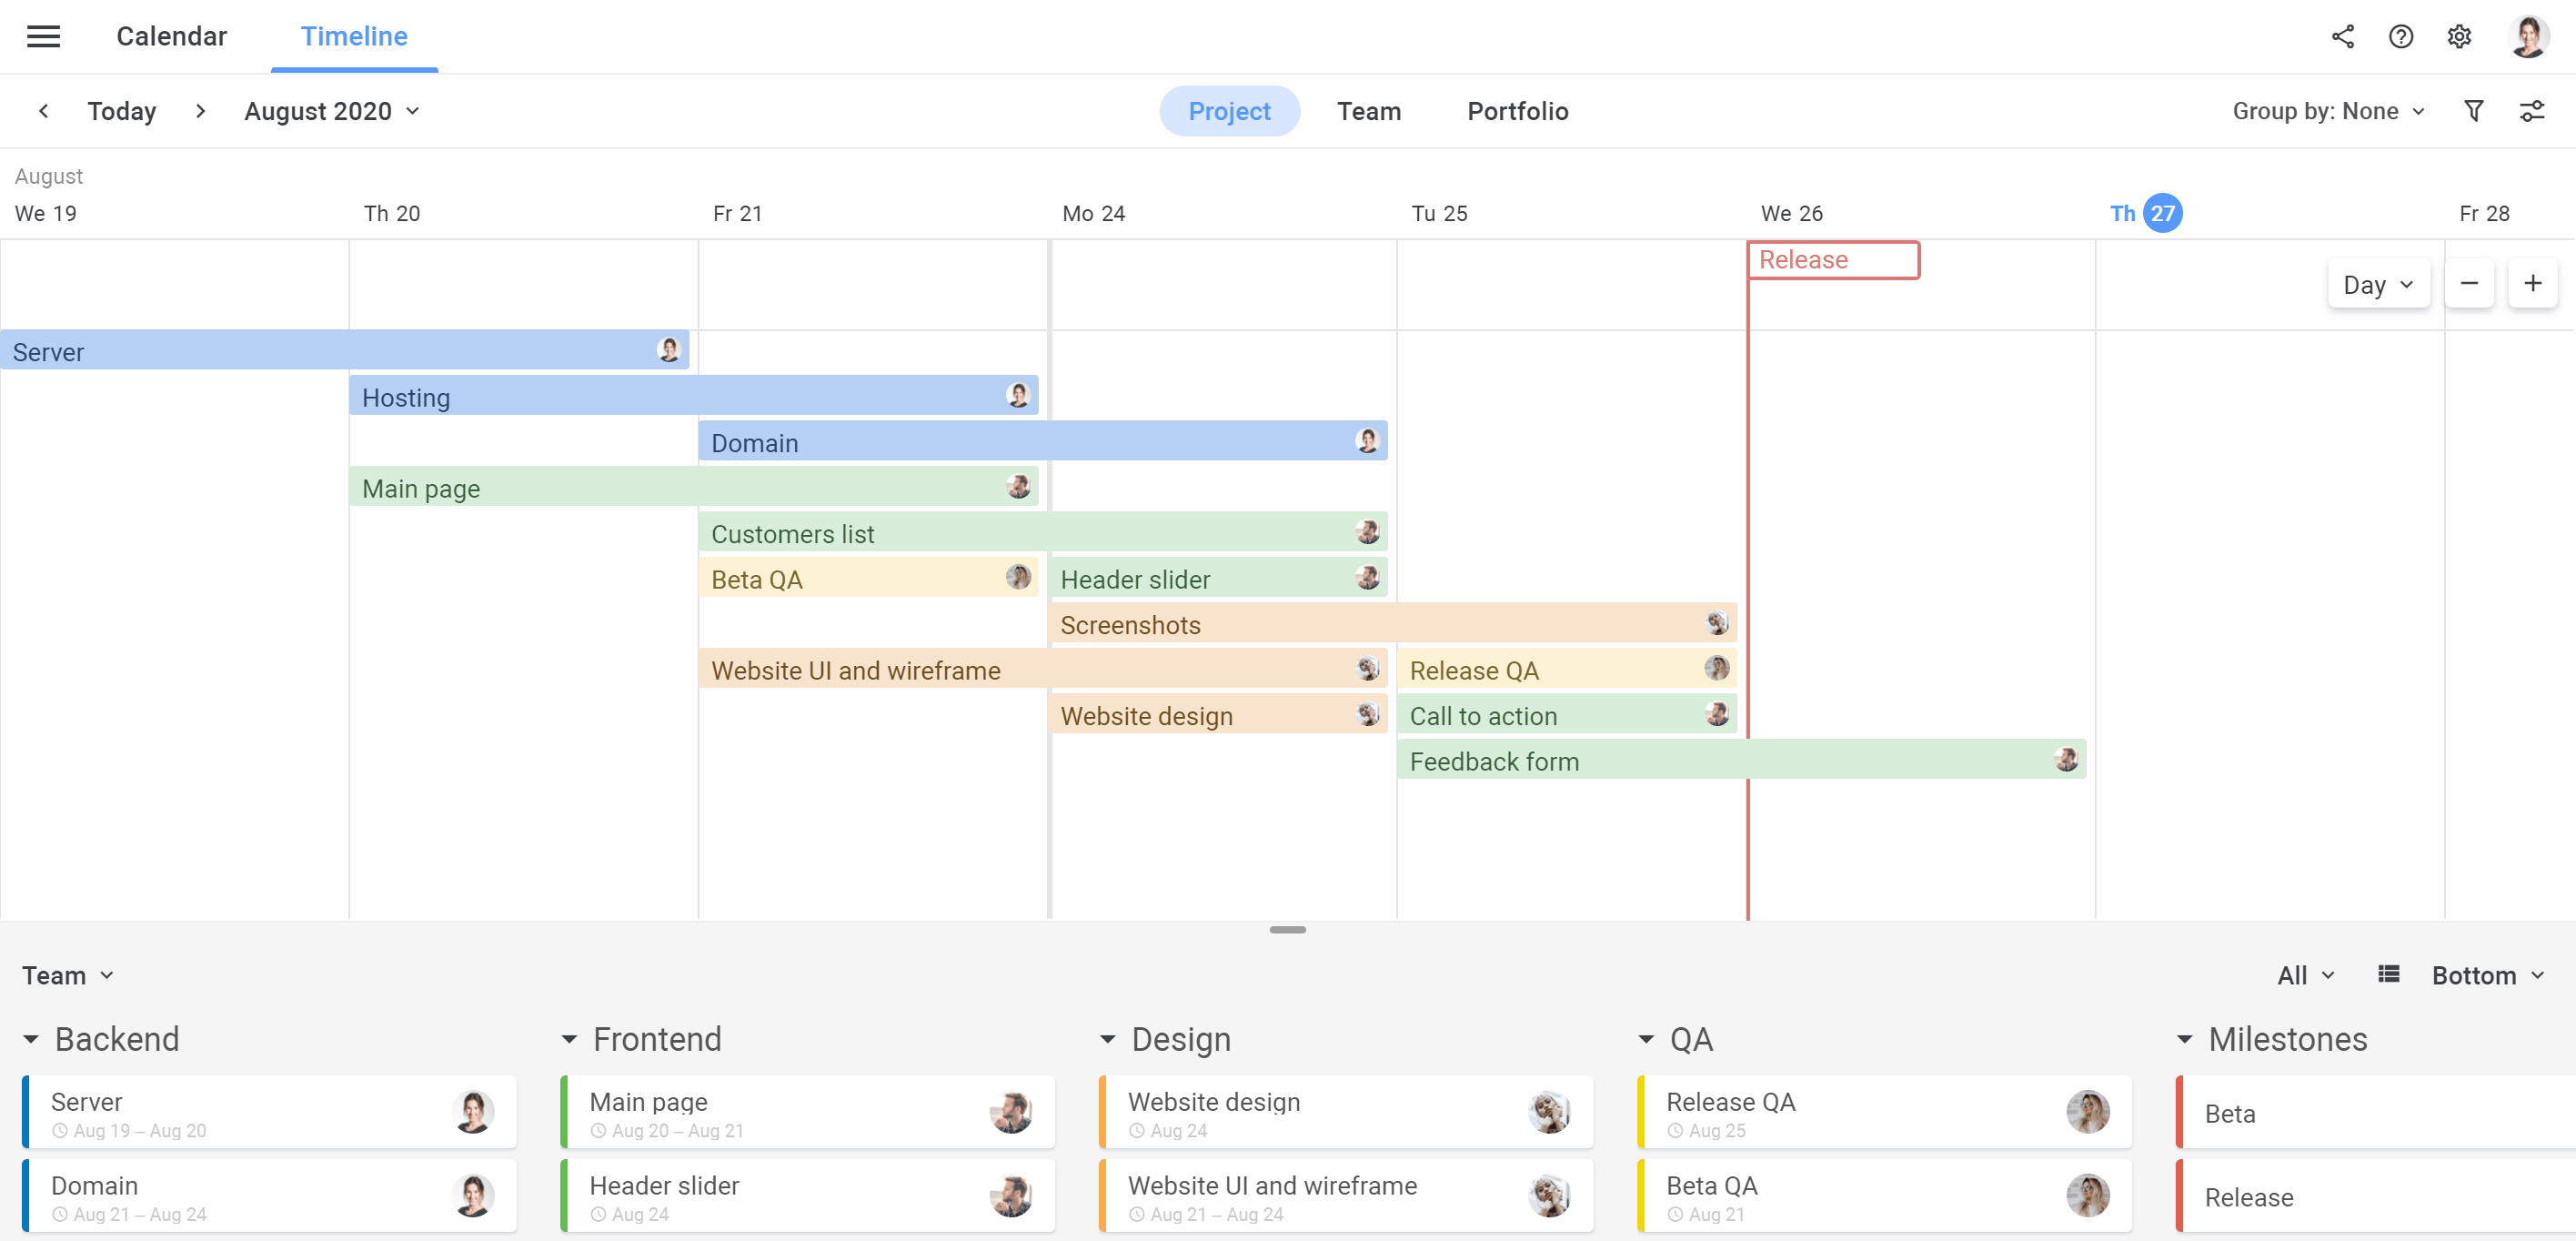 Planyway Getting Stated Project Timeline No Lanes